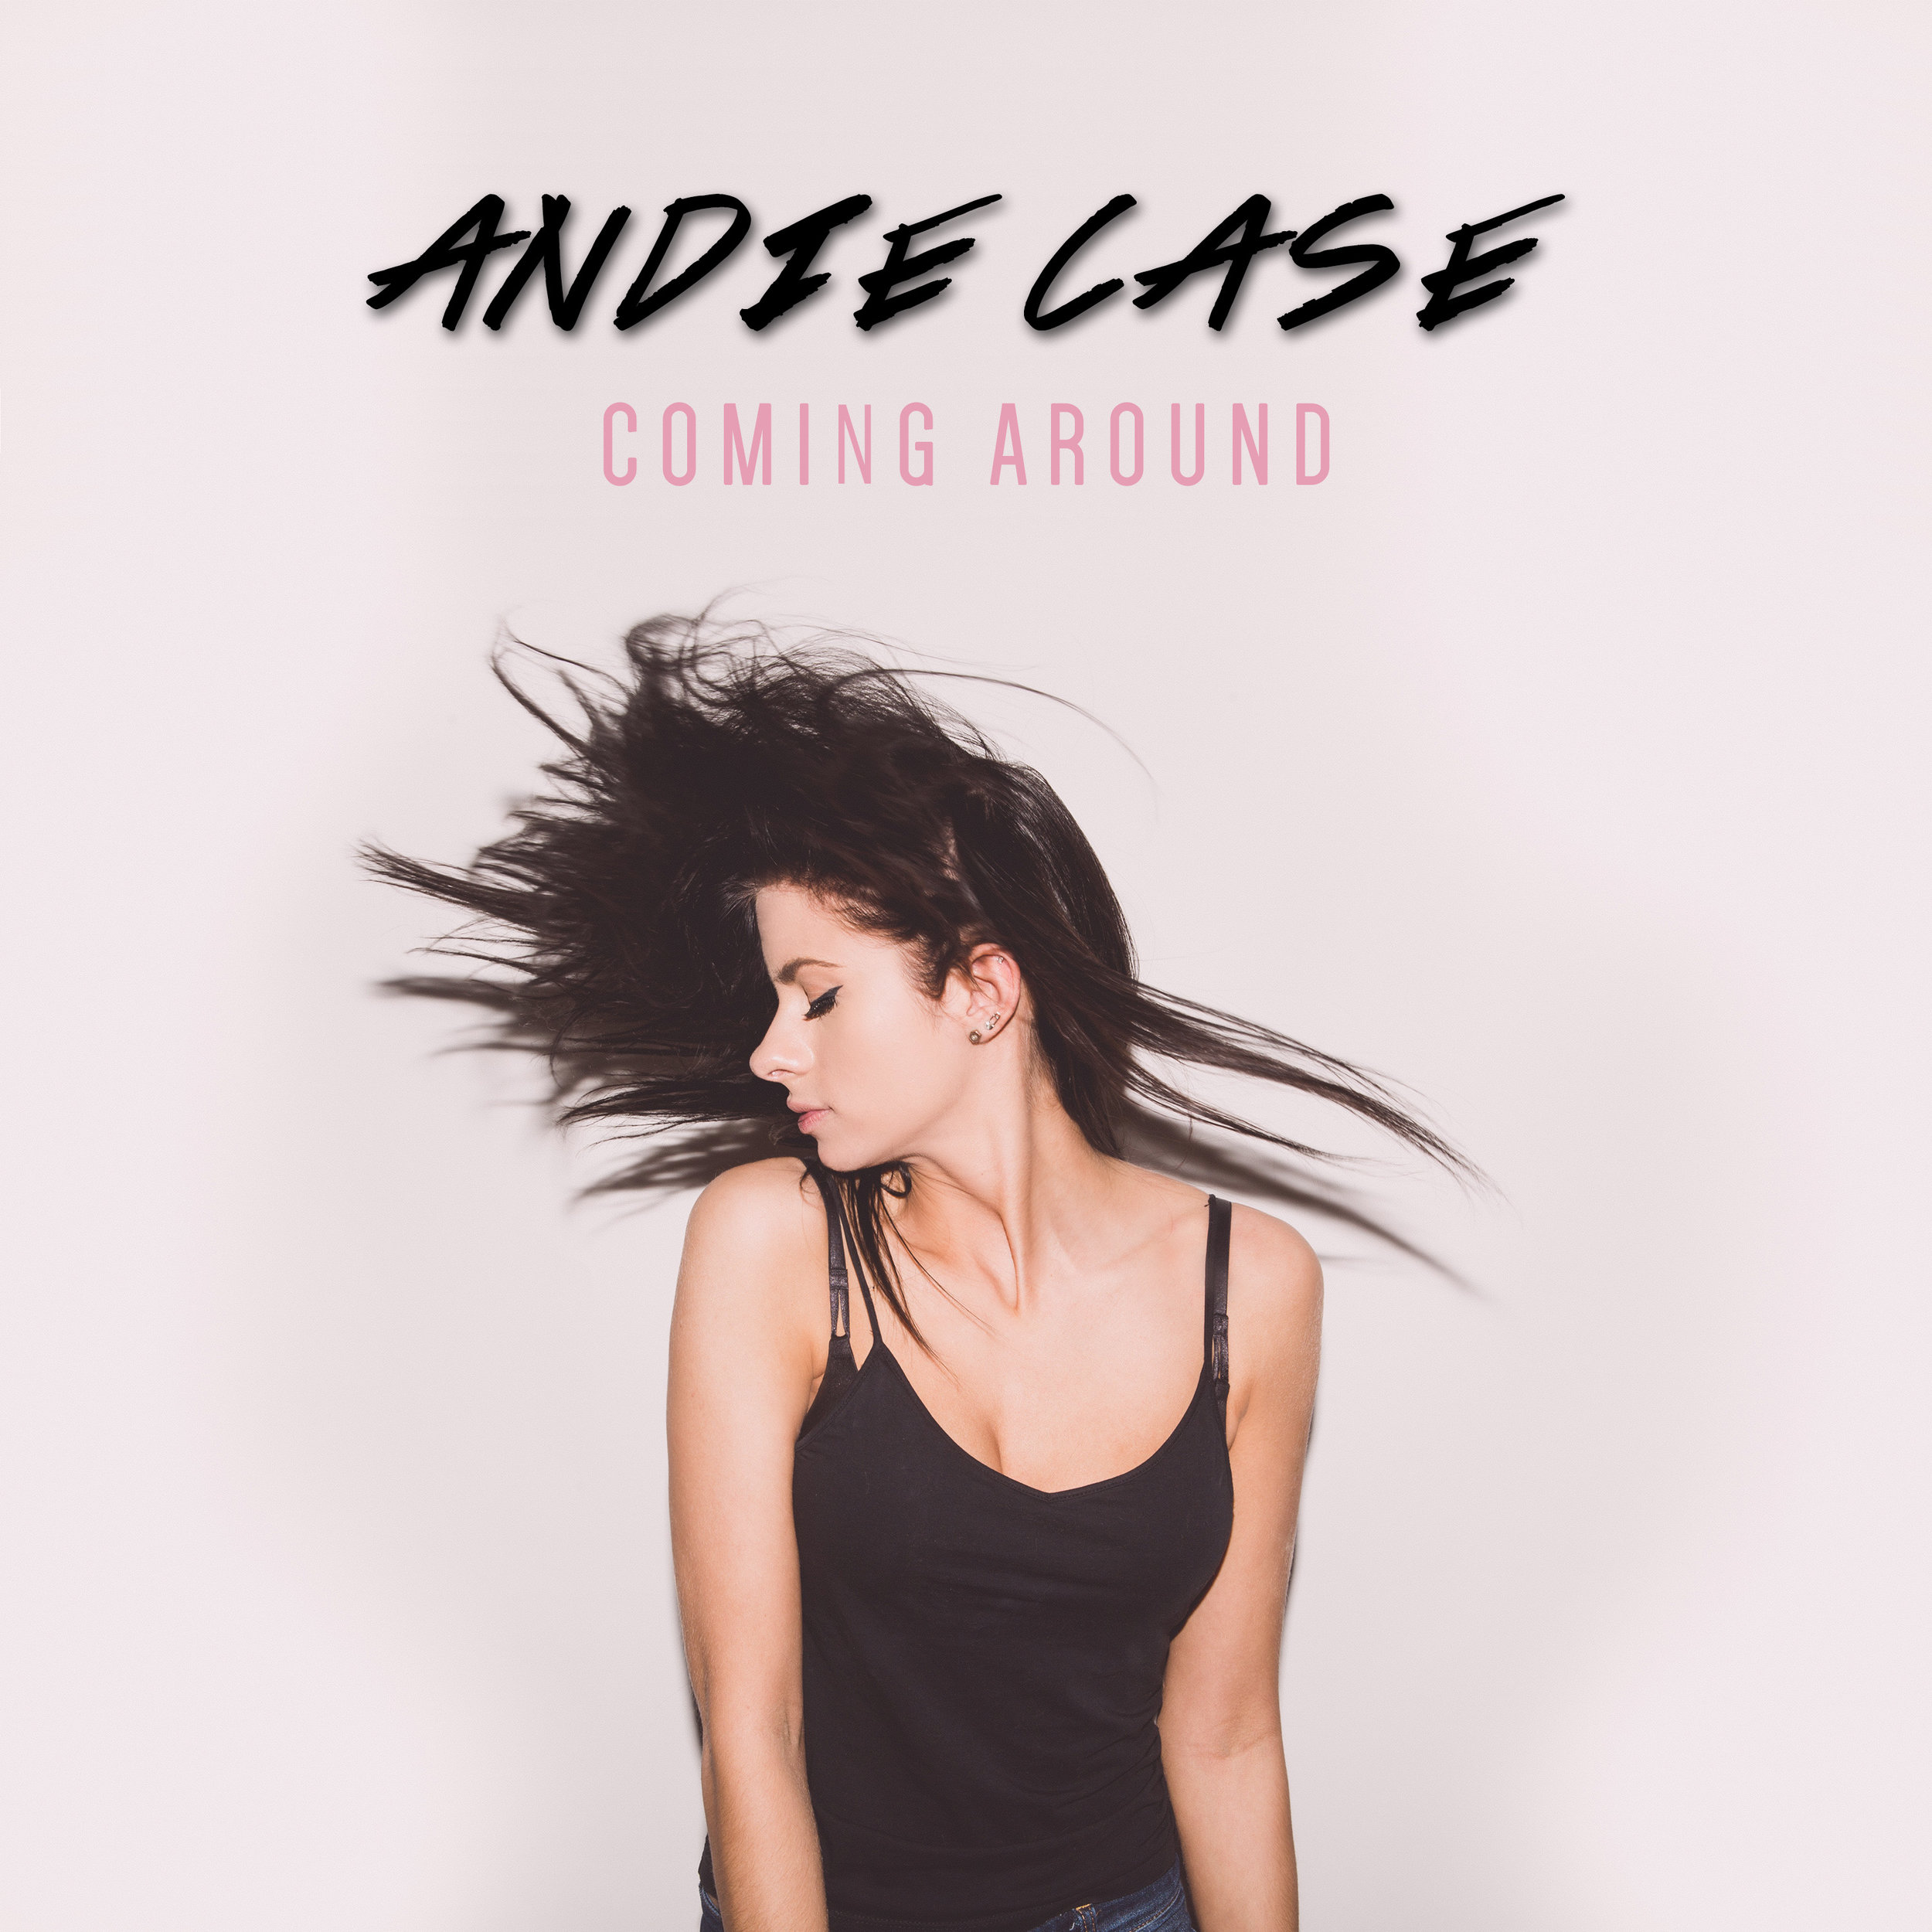 SXS027 Andie Case - Coming Around